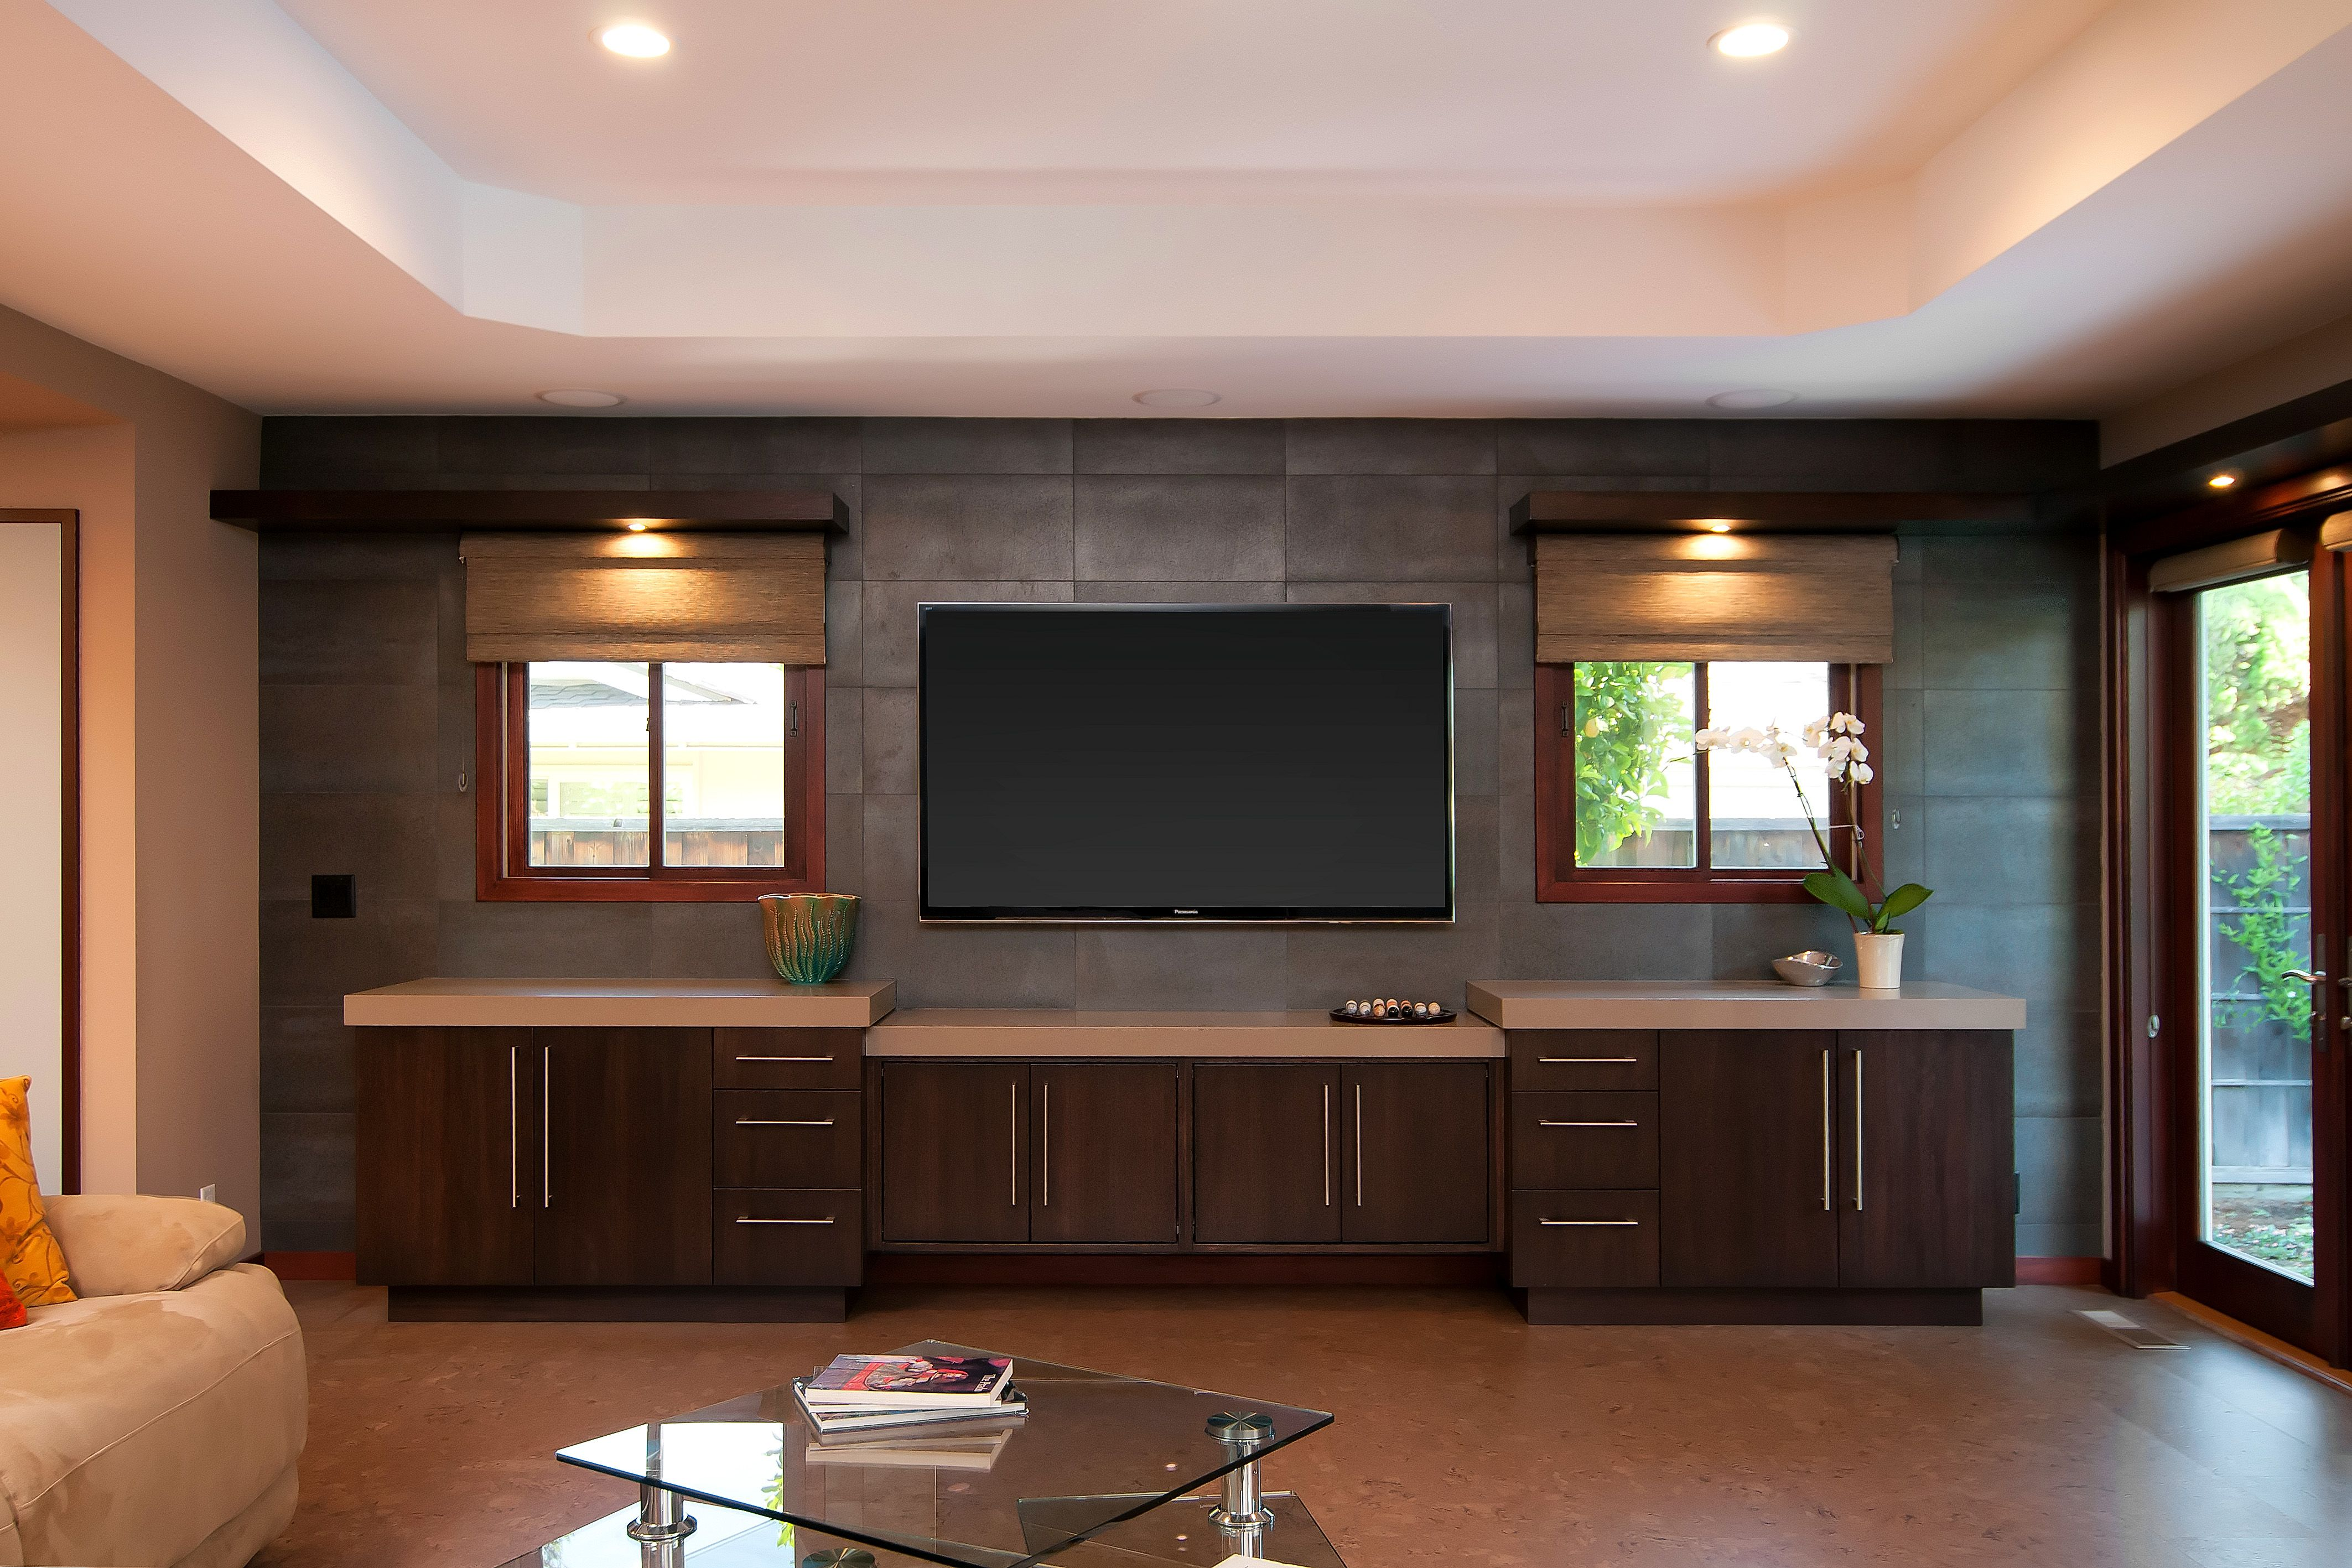 Awesome High End Entertainment Centers For Flat Screen Tvs With Flat Screen Tv On Wall Ideas Wohnen Wohnzimmer